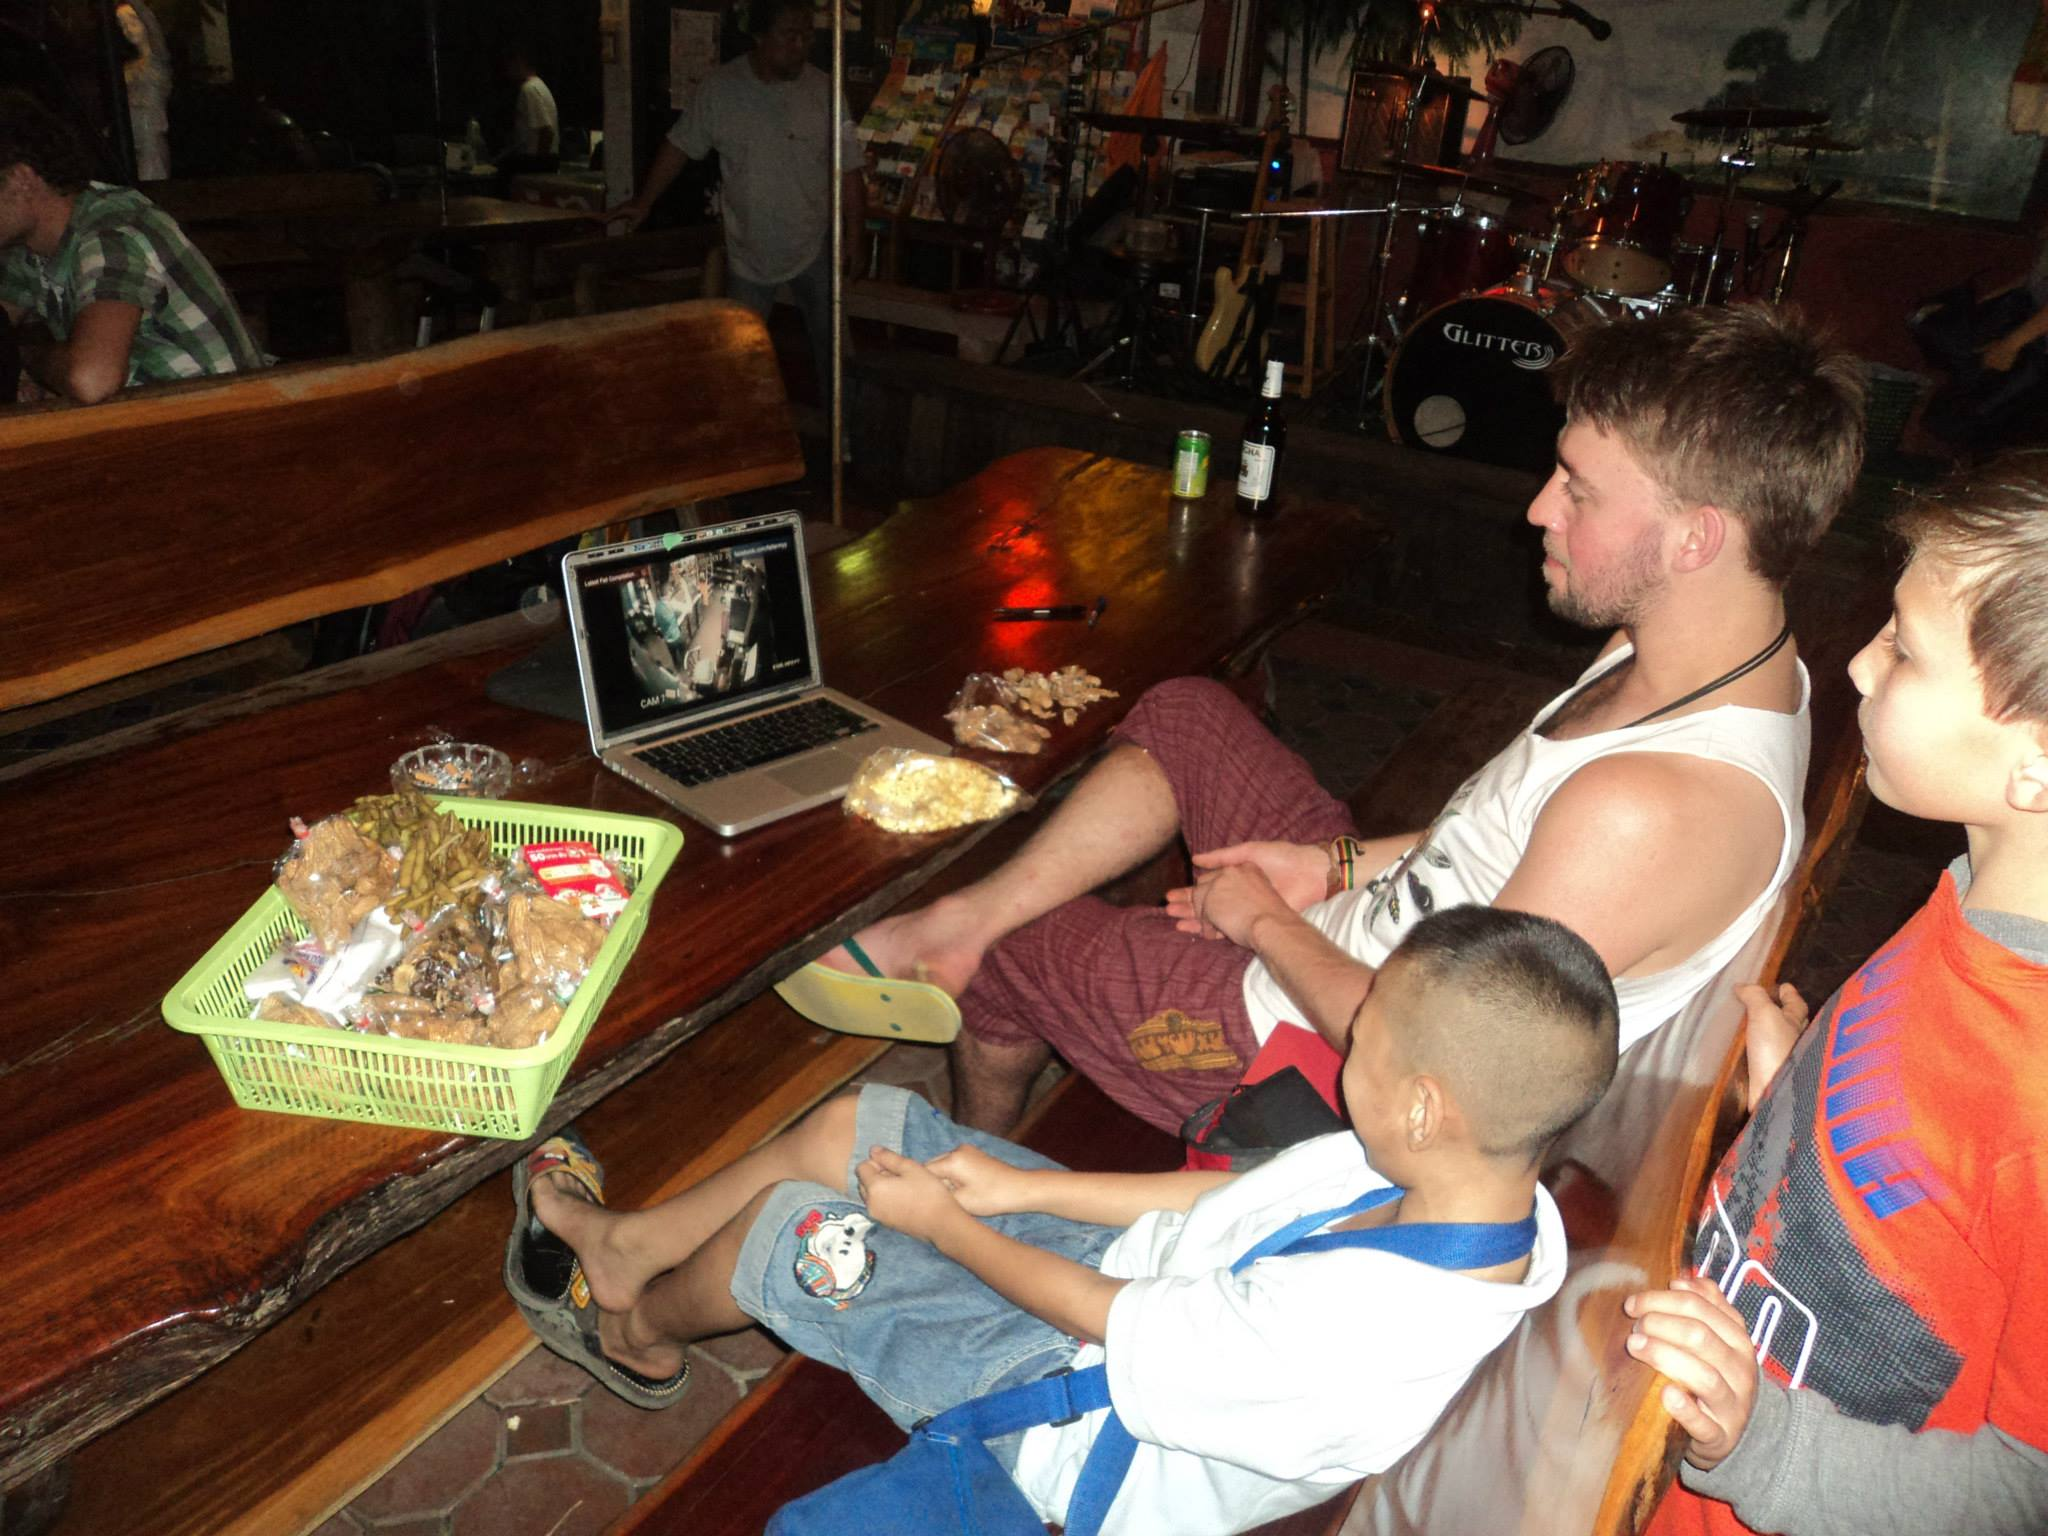 Mike Neumegen and two boys watching a laptop on a table with food